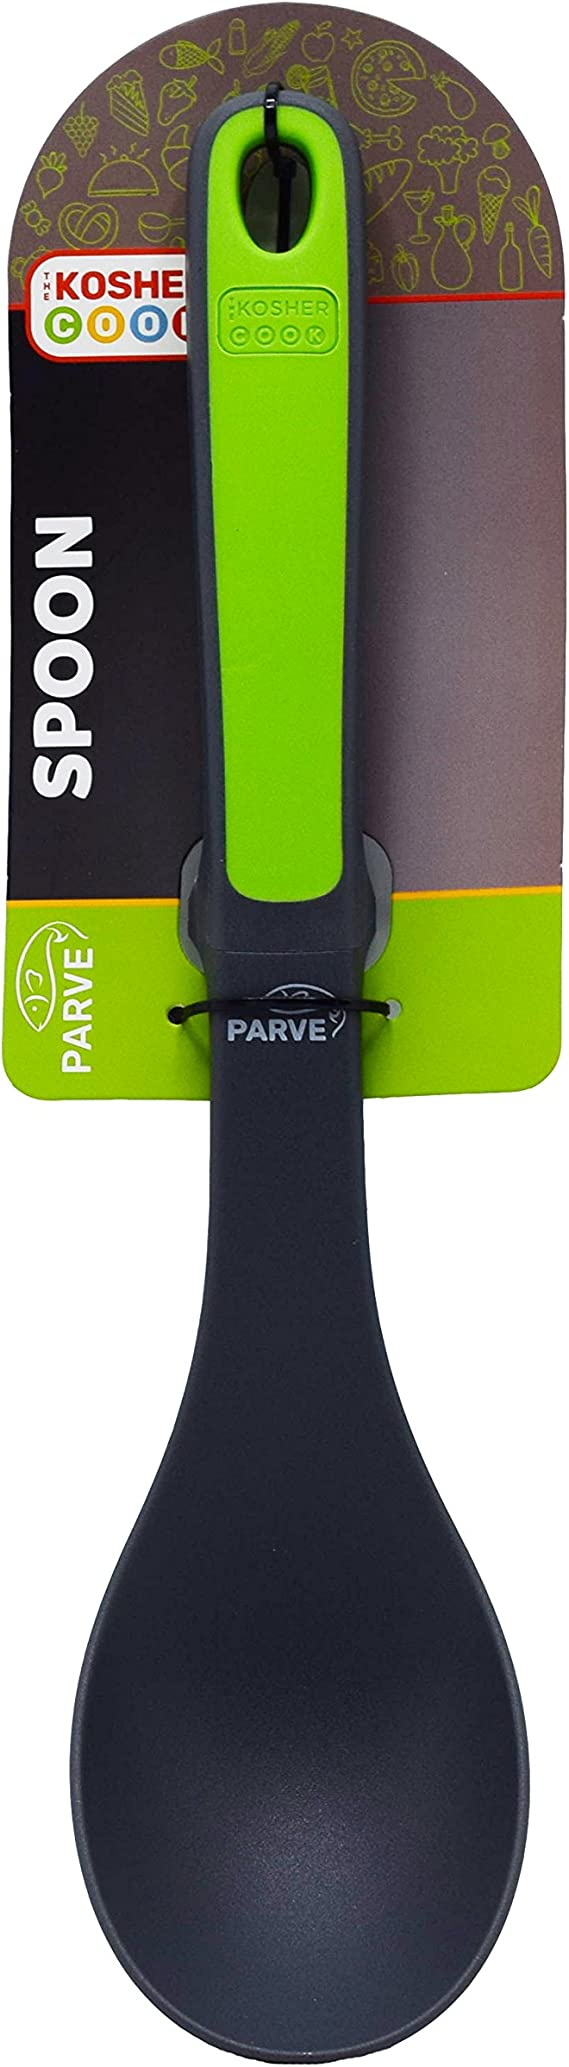 Parve Green Basting Spoon Heavy Duty Silicone Mixing and Serving Utensil with Ergonomic Handle and Comfortable Grip For Cooking and Baking Color Coded Kitchen Tools by The Kosher Cook